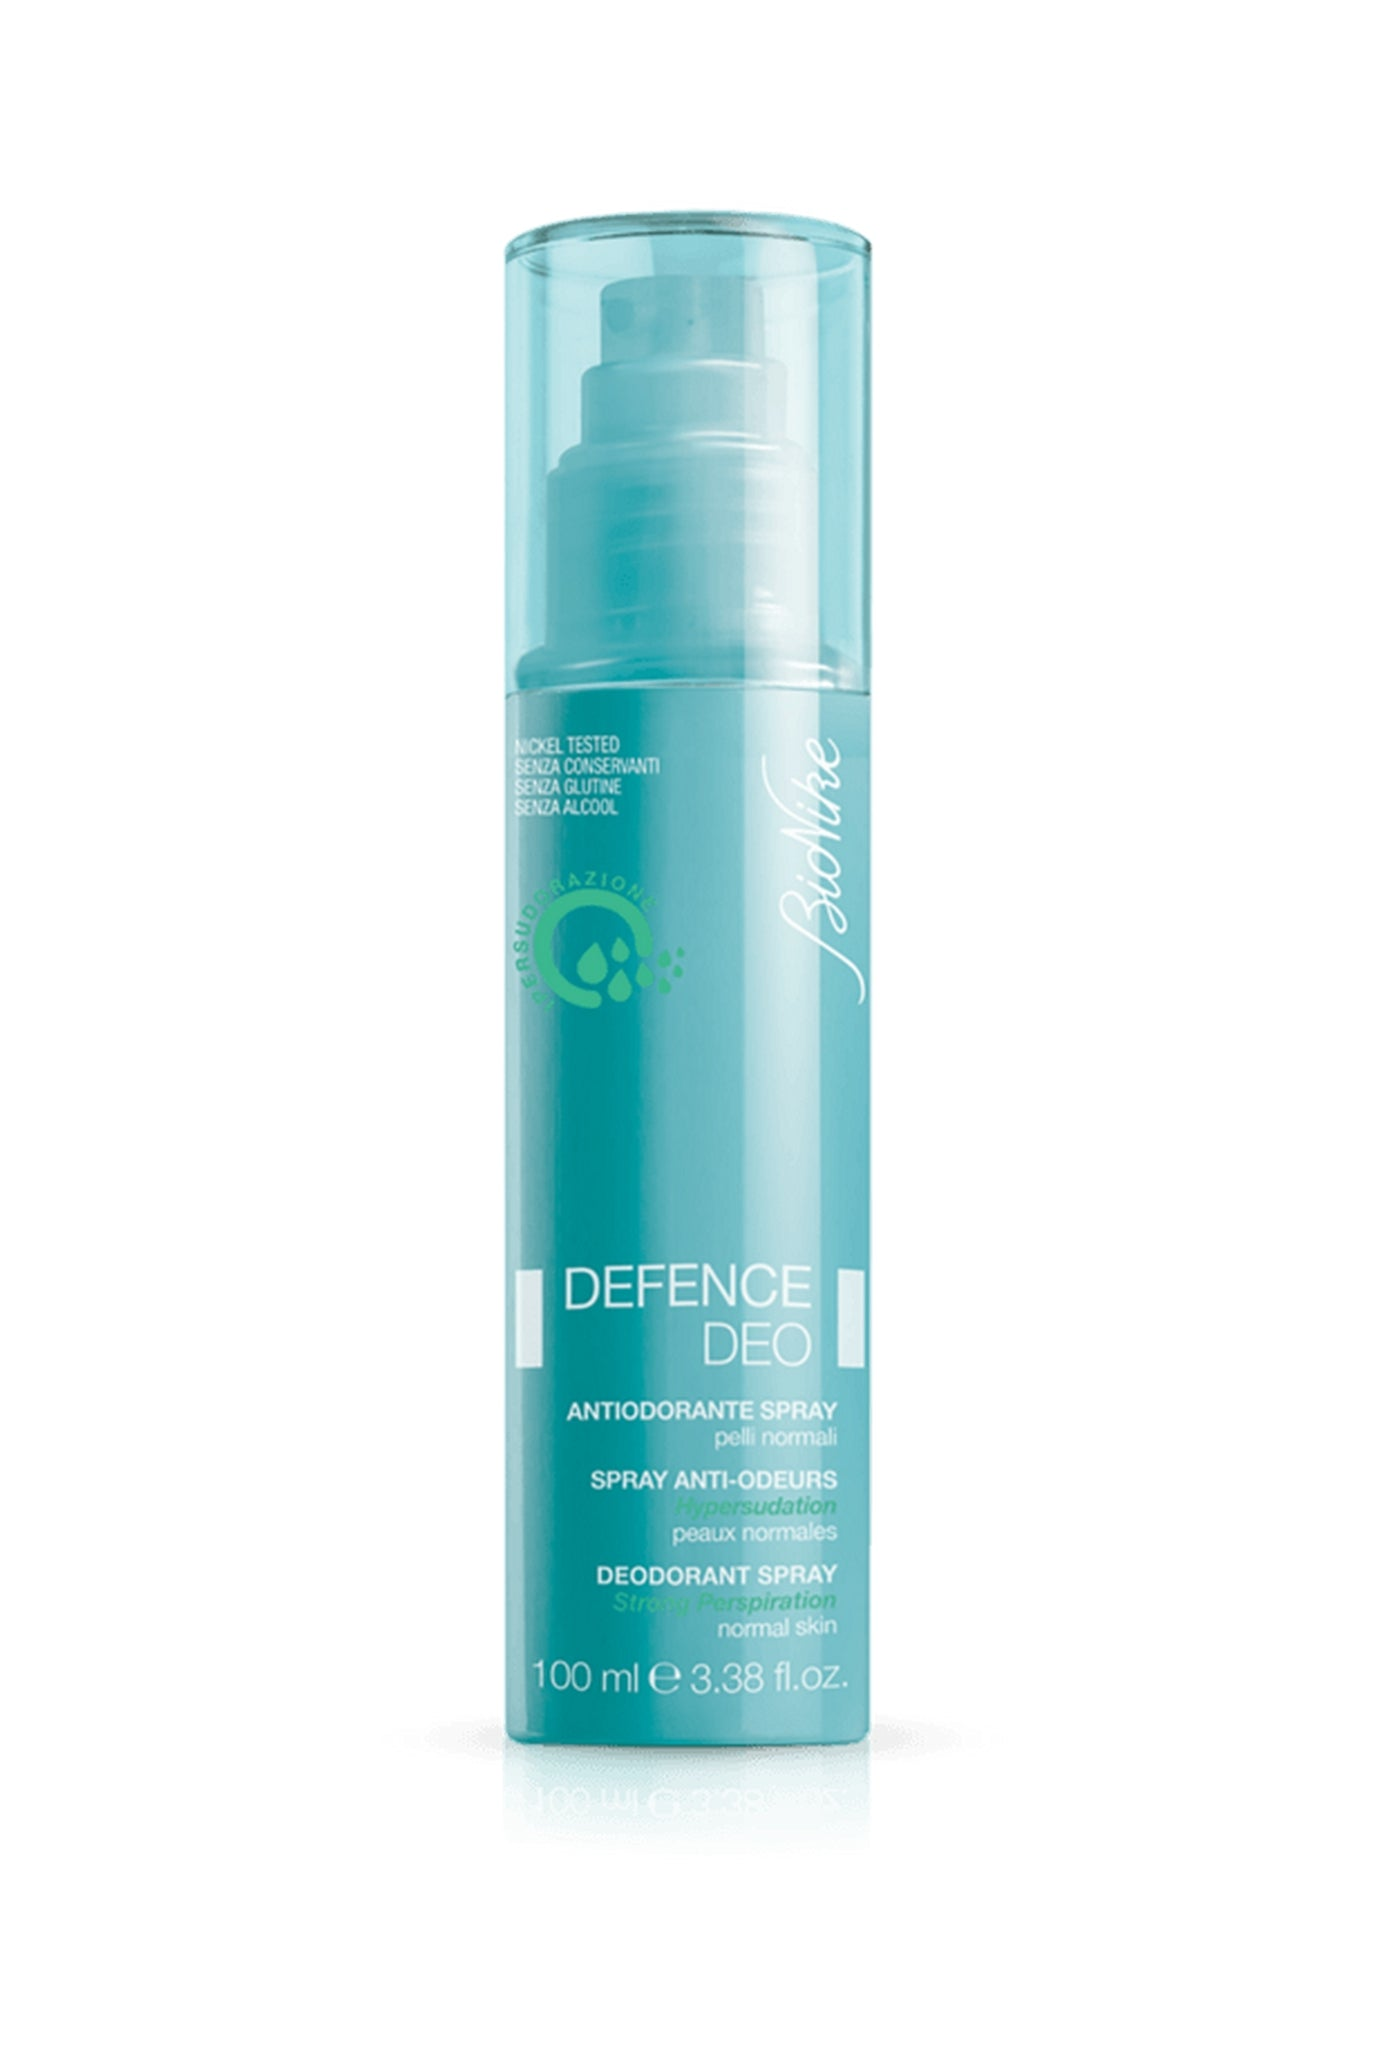 DEFENCE DEO Deodorant Spray (Alcohol Free)